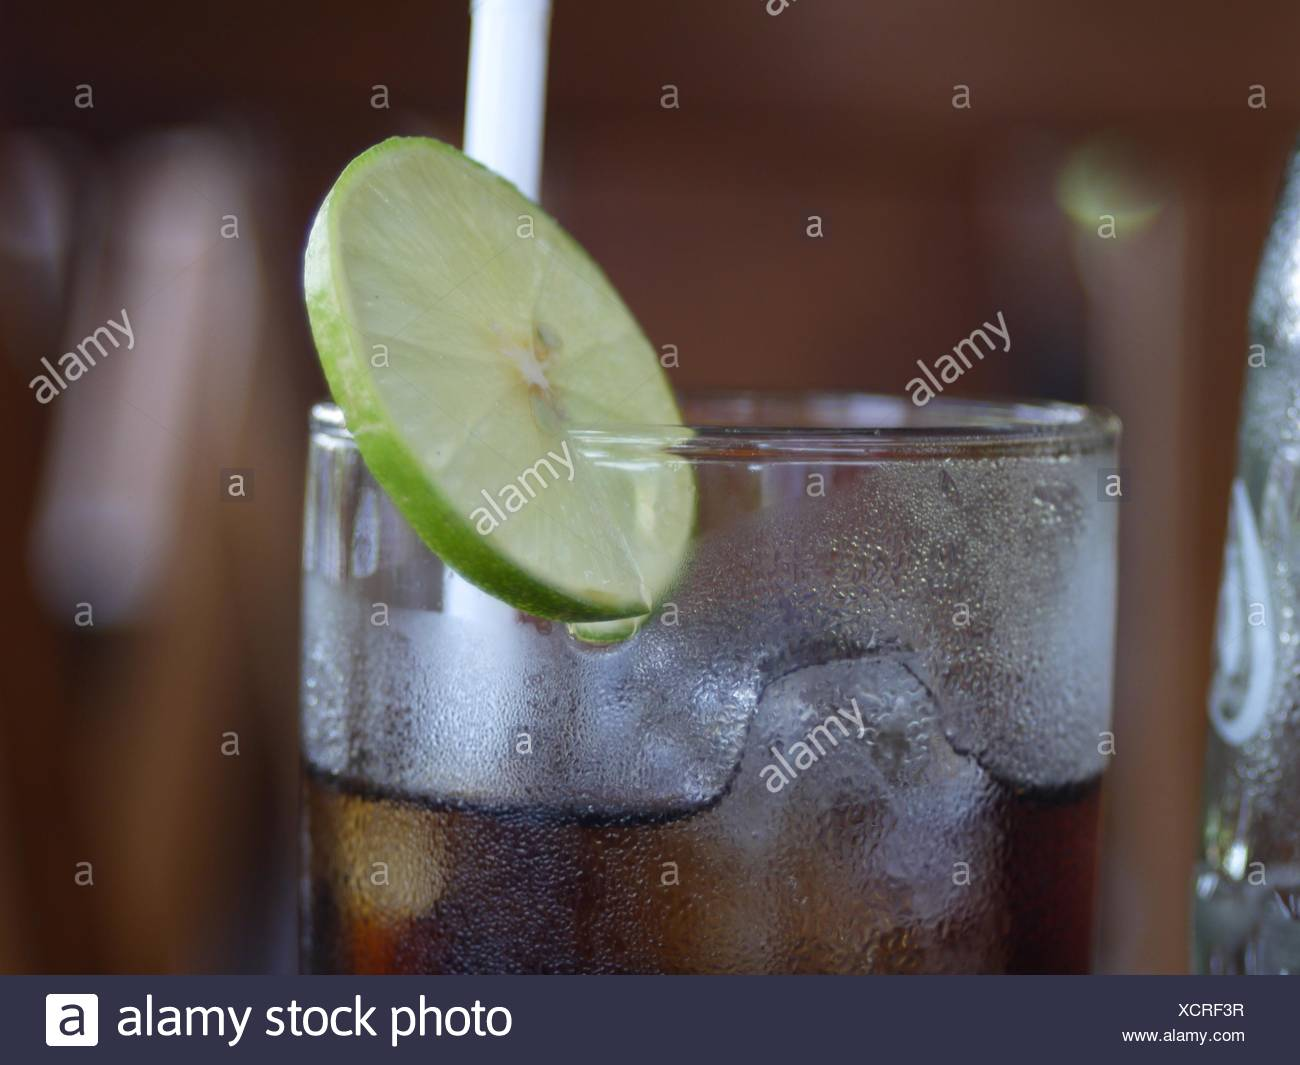 Closer-Up Of Drink With Lemon Slice - Stock Image